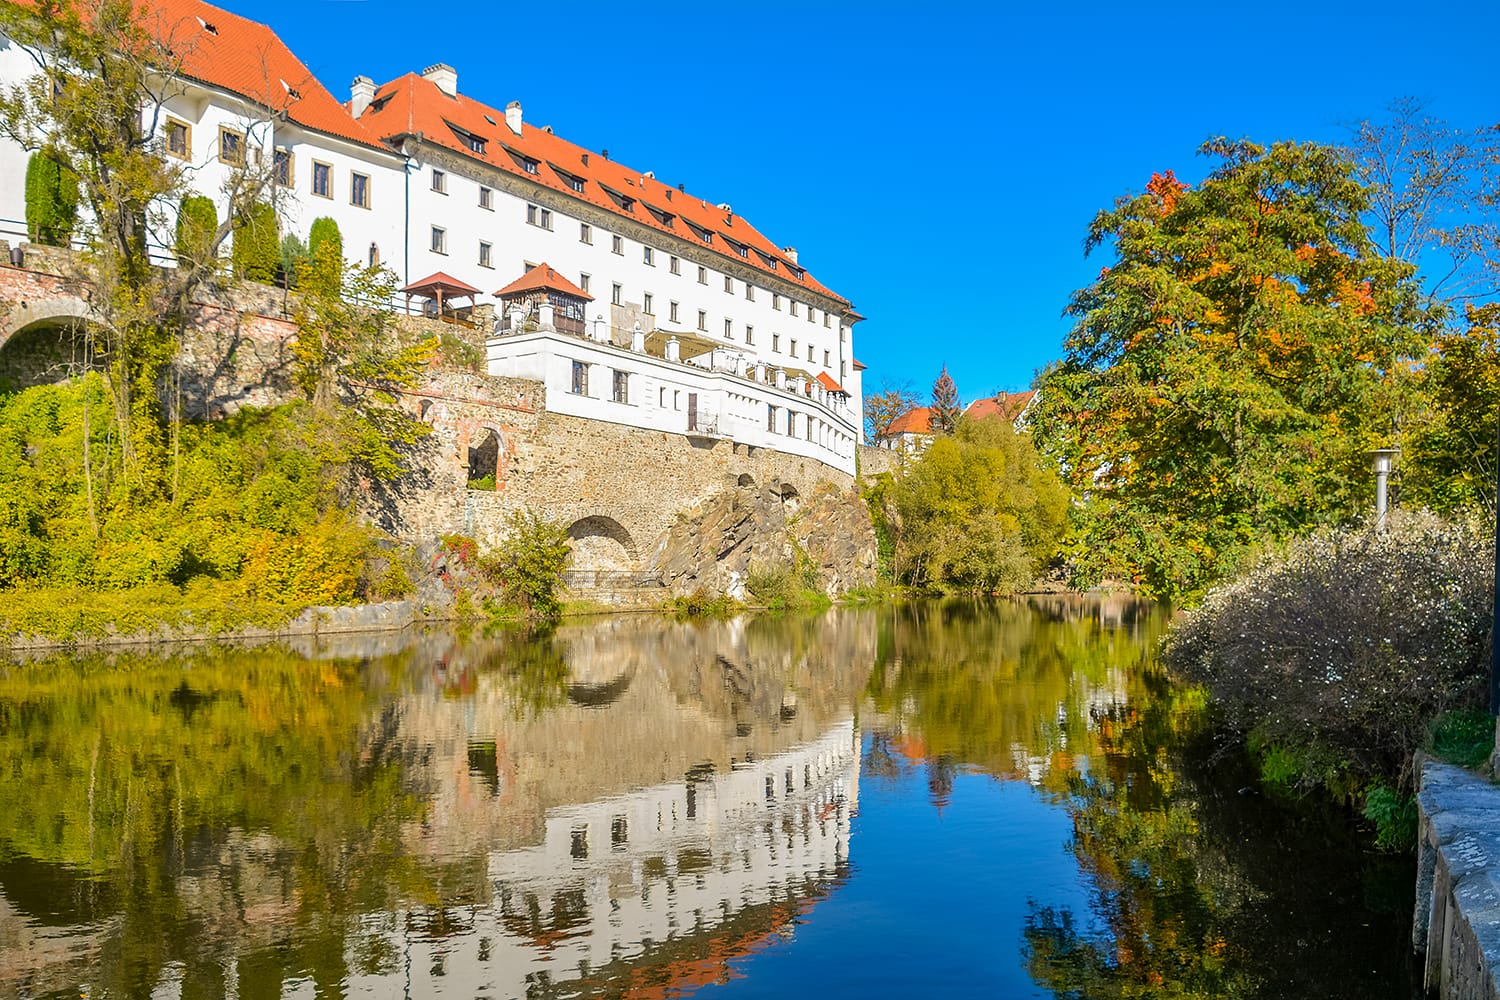 Embankment of Vltava River in Cesky Krumlov. Krumlov is town in South Bohemian Region of Czech Republic. Its historic centre, centred around Cesky Krumlov Castle.